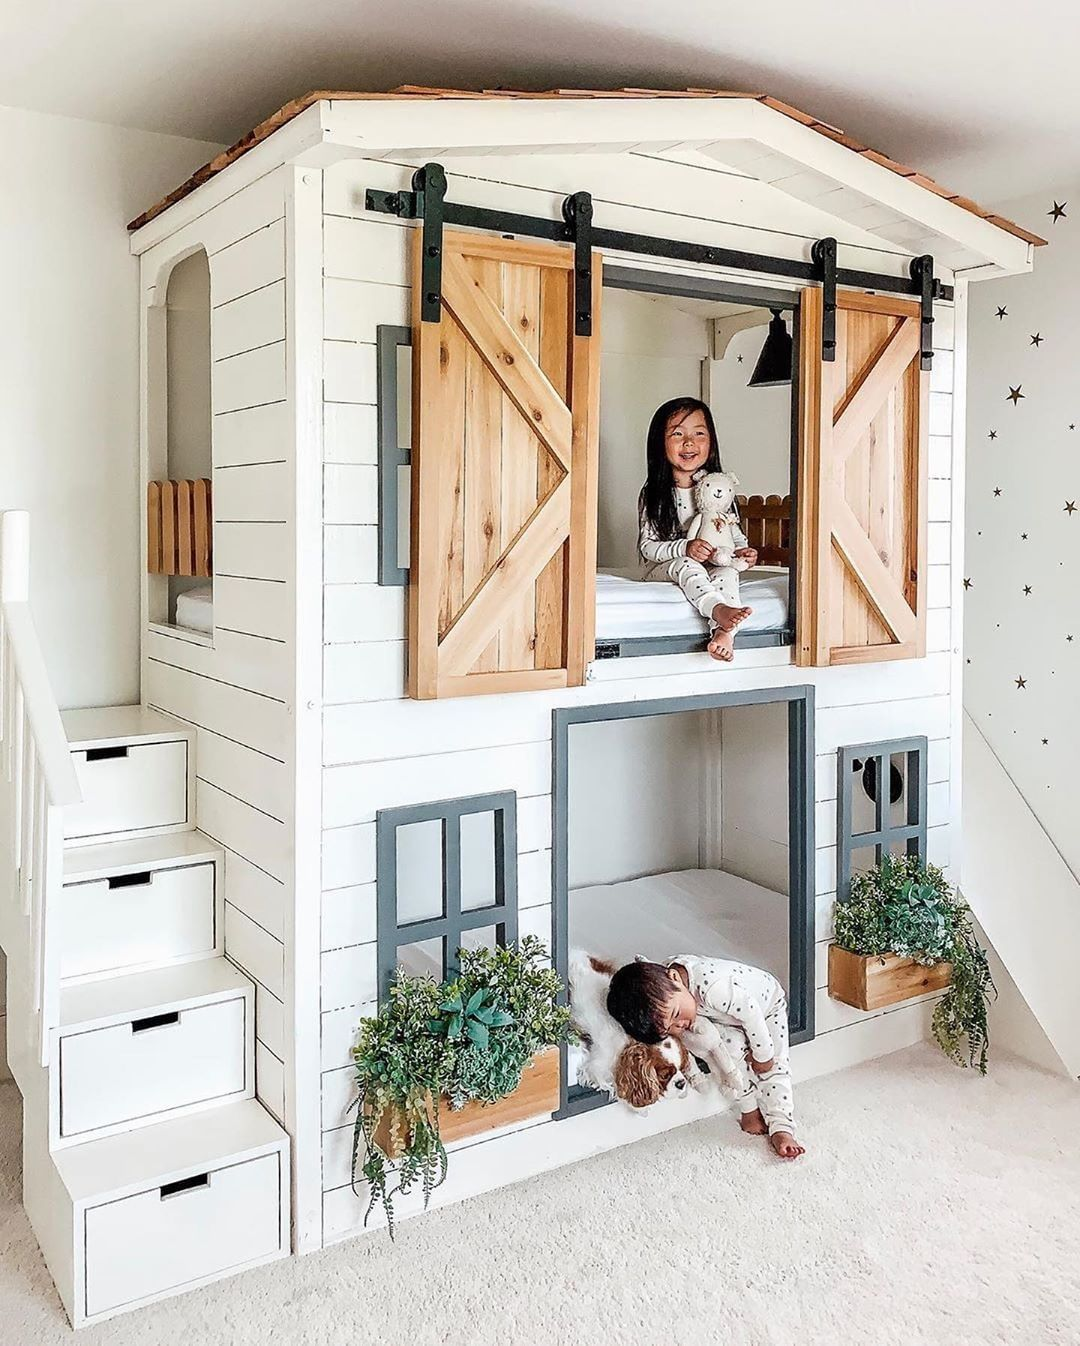 Decor Guide: Kids Room Ideas That Are Nothing but Stylish #kidsrooms